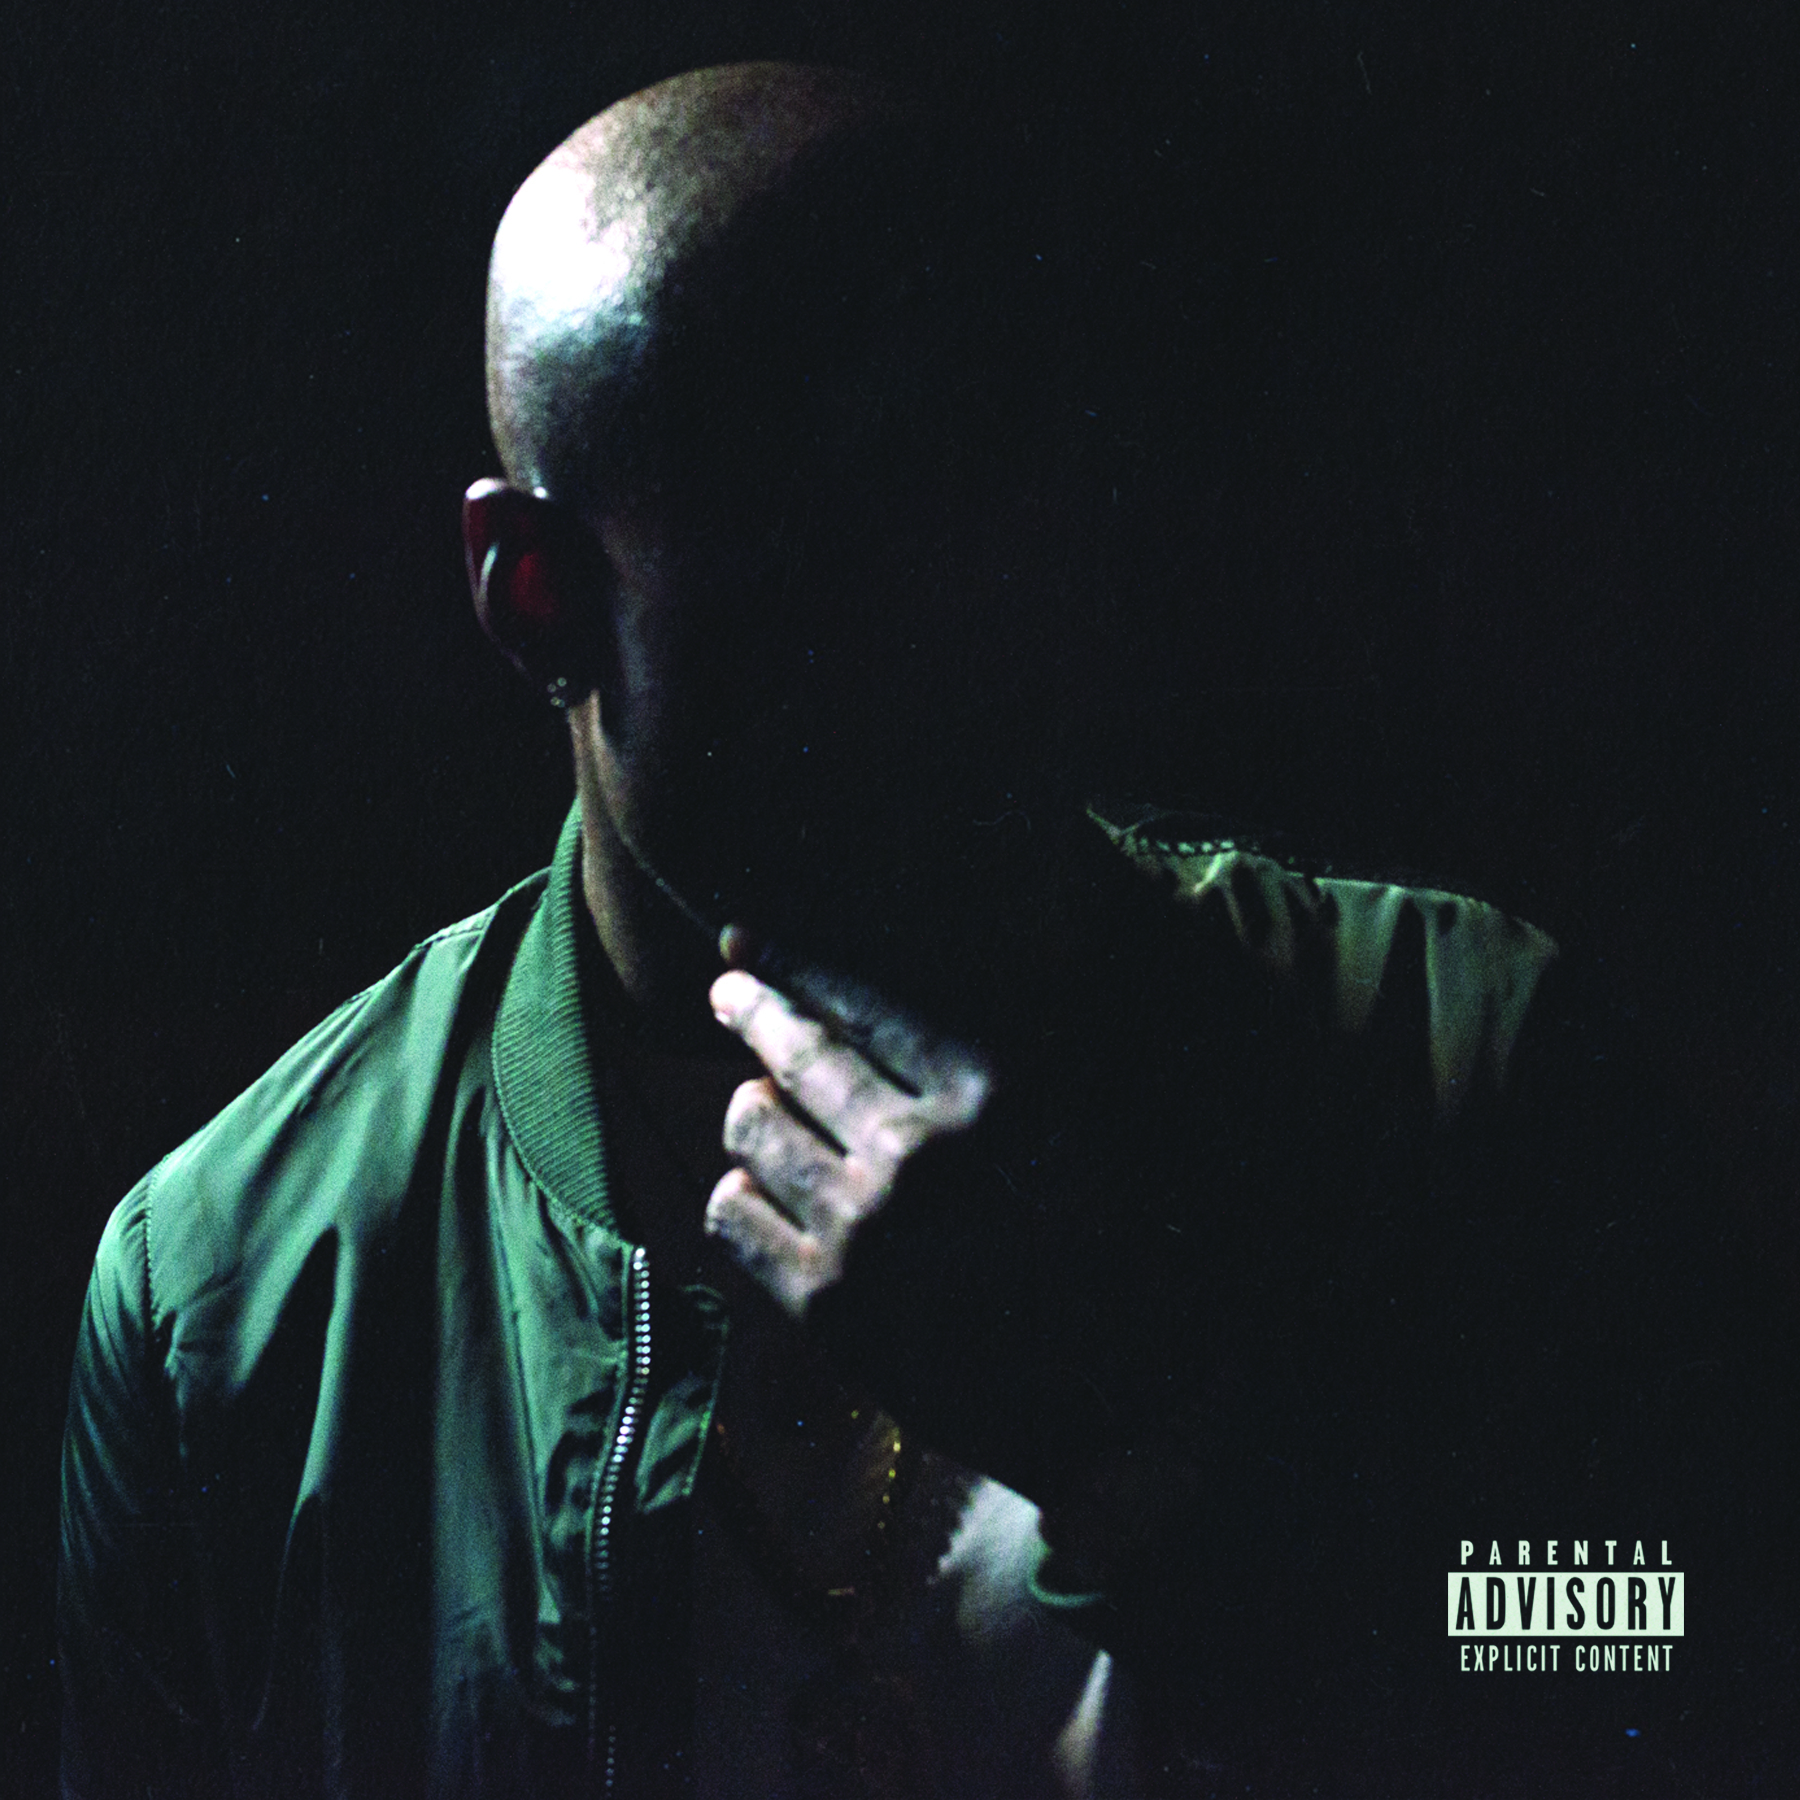 Freddie Gibbs / Shadow Of A Doubt, ESGN Records, 2015